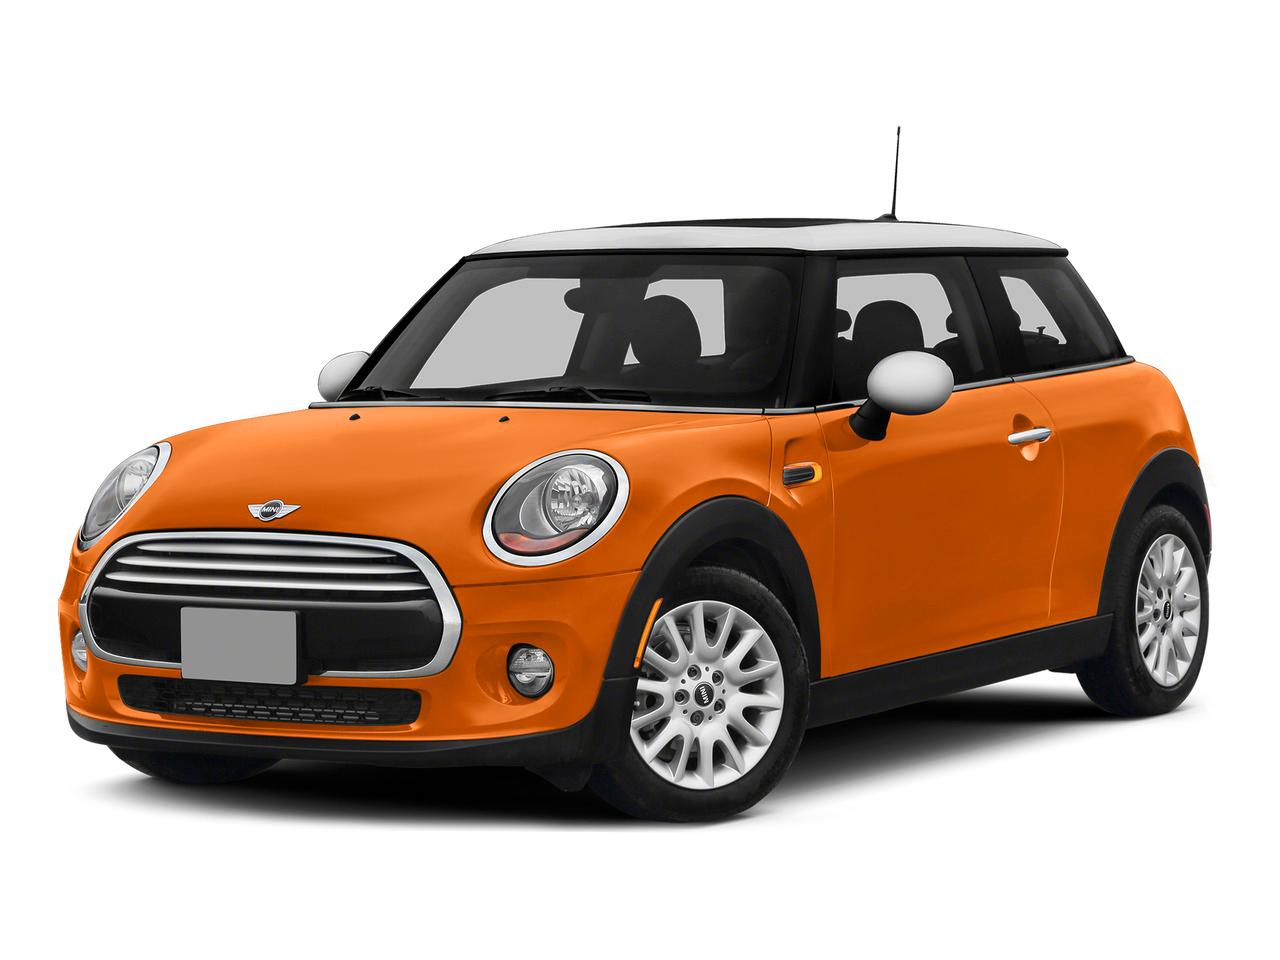 2015 MINI Cooper S Hardtop Vehicle Photo in Oklahoma City, OK 73114